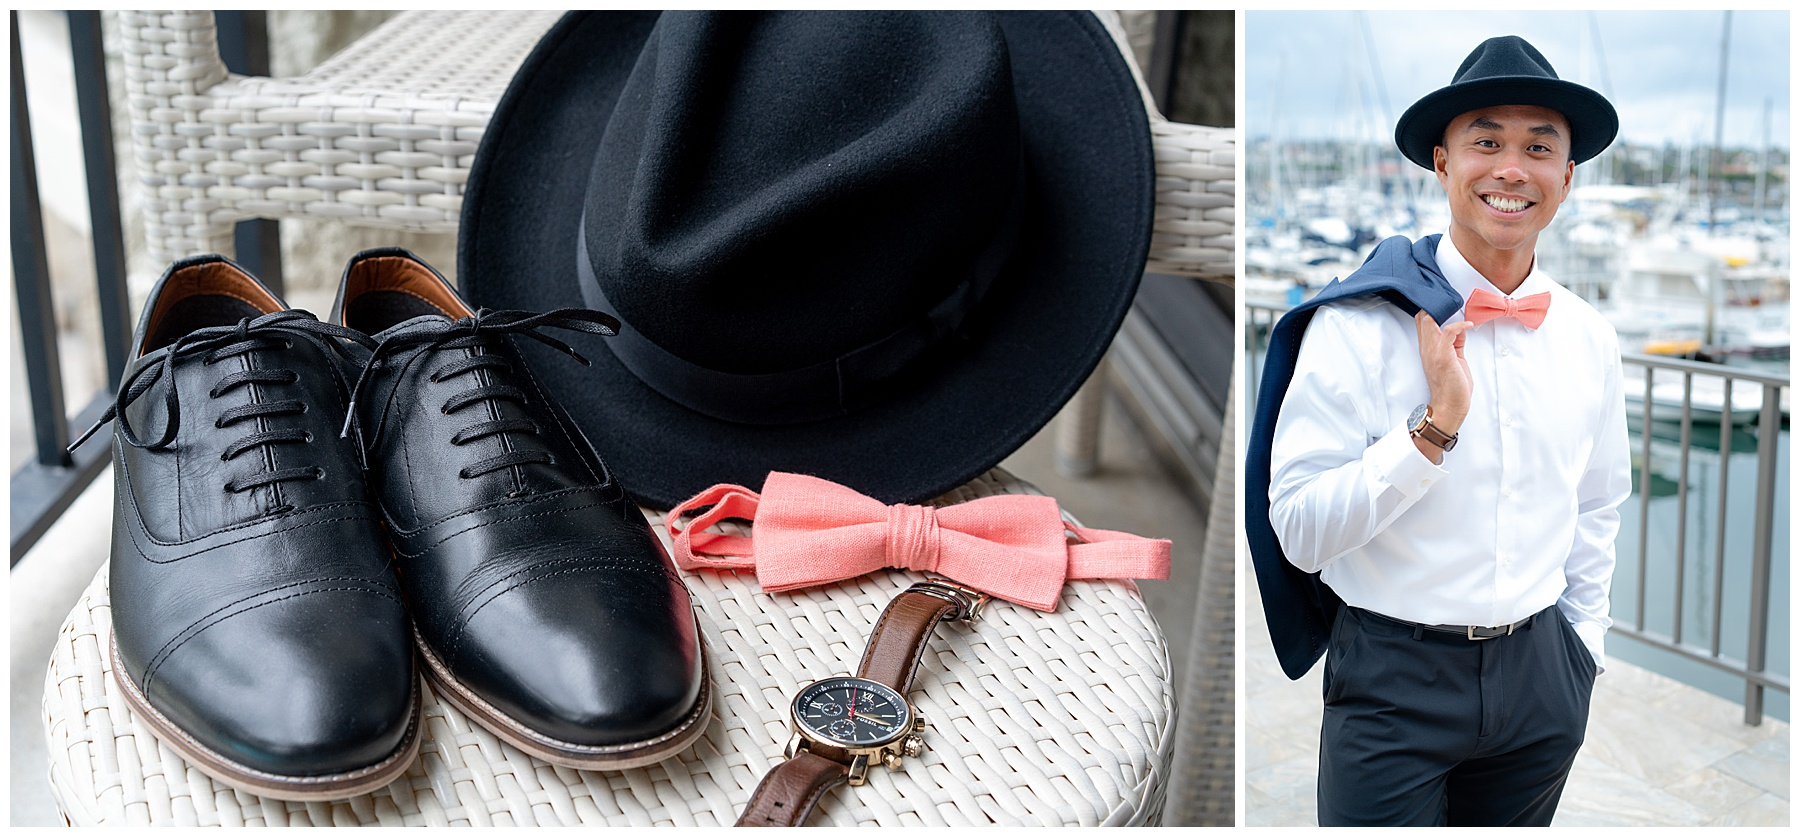 groom top hat and bow tie